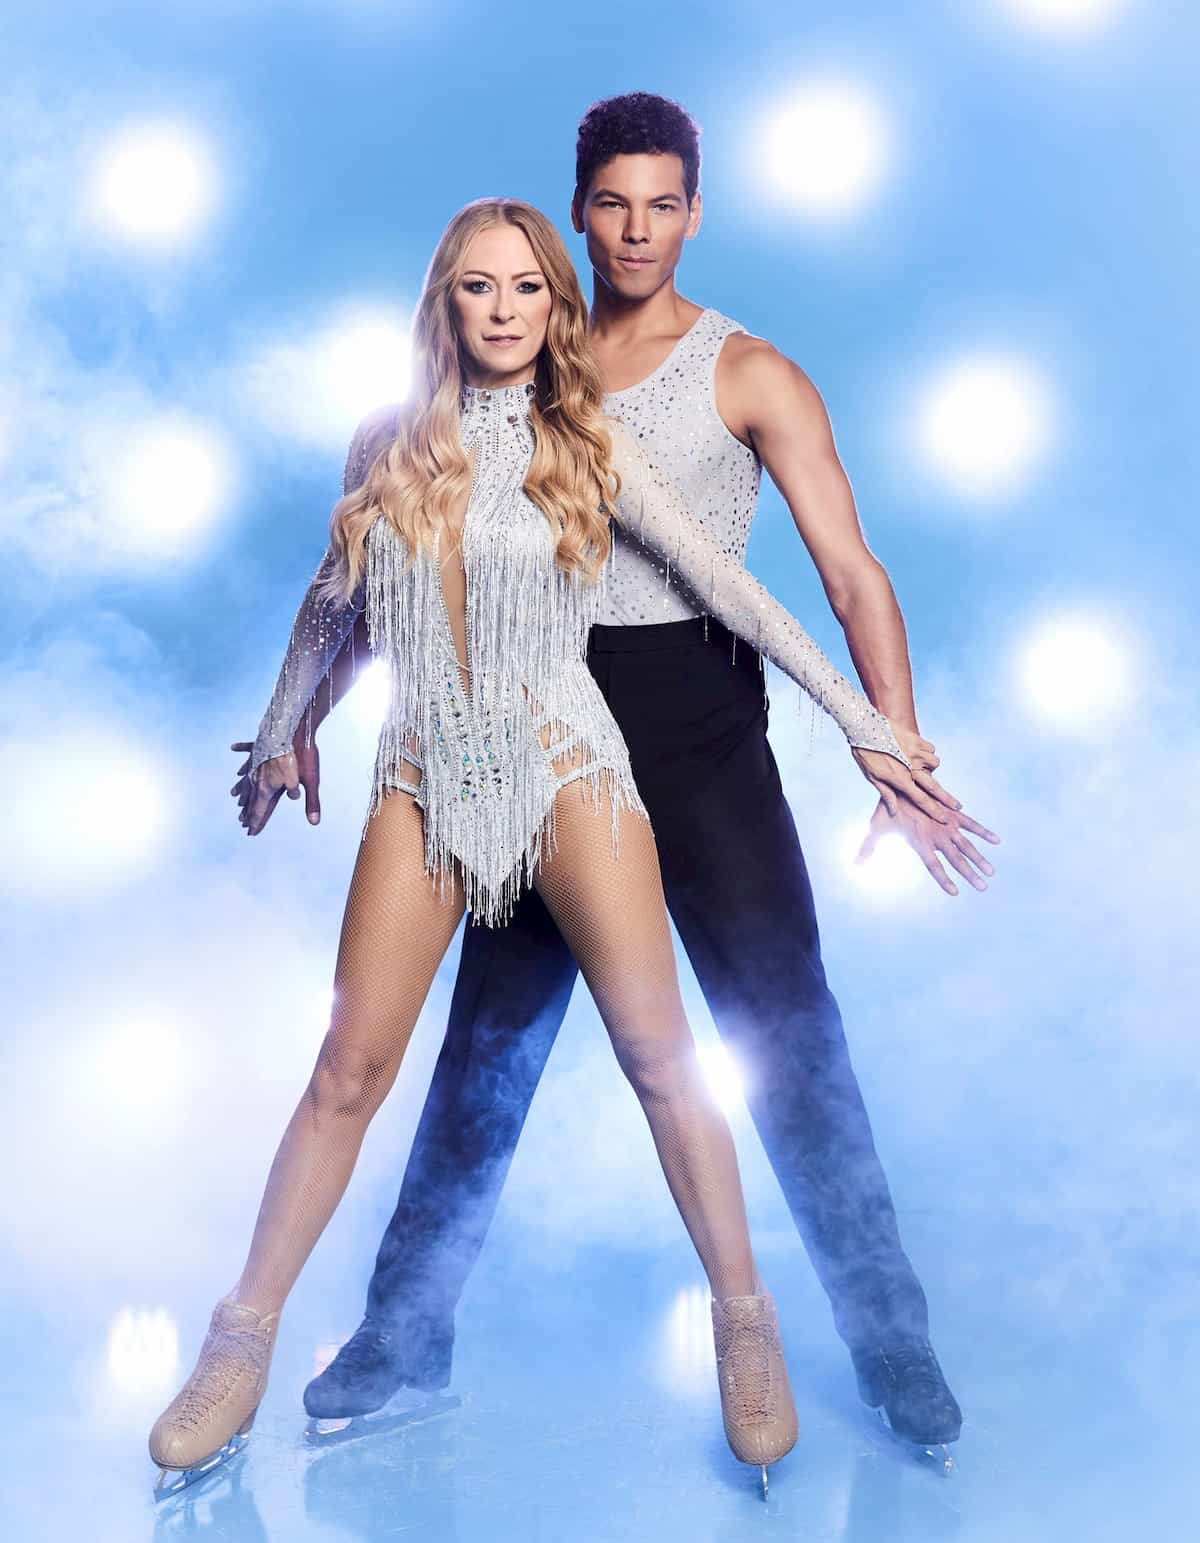 Jenny Elvers - Jamal Othman bei Dancing on Ice 2019 Herbst zweite Staffel